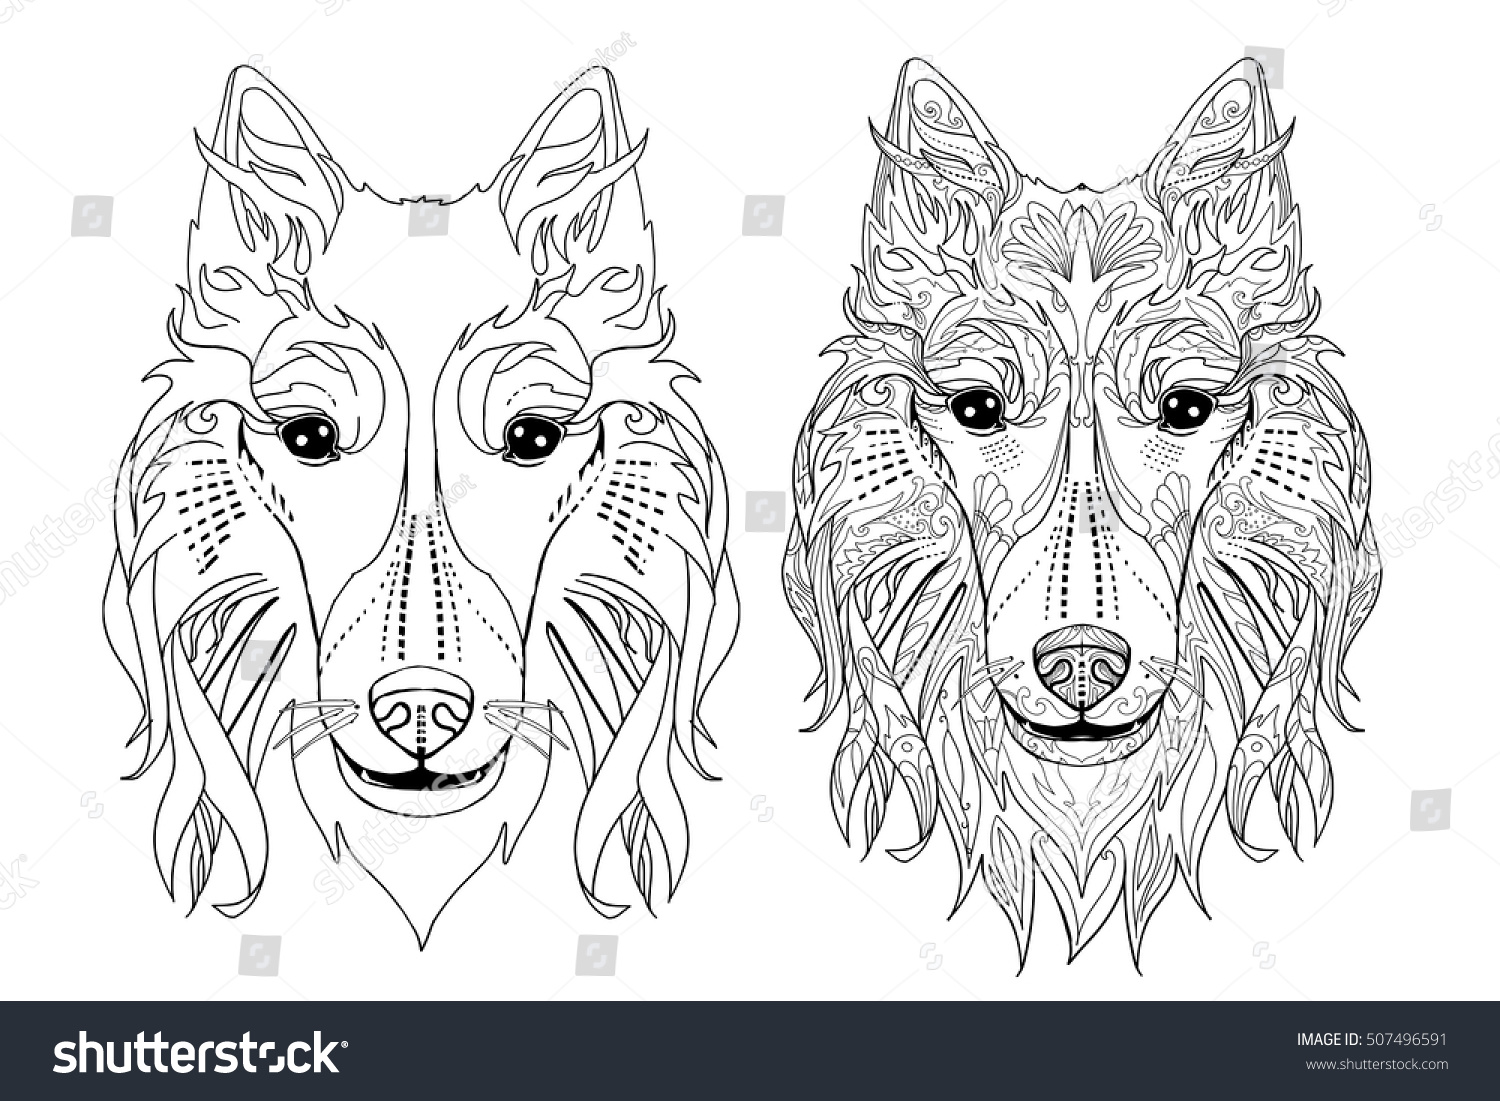 Ethnic Decorative Doodle Dog Coloring Book Page With Collie Face For Adults Vector